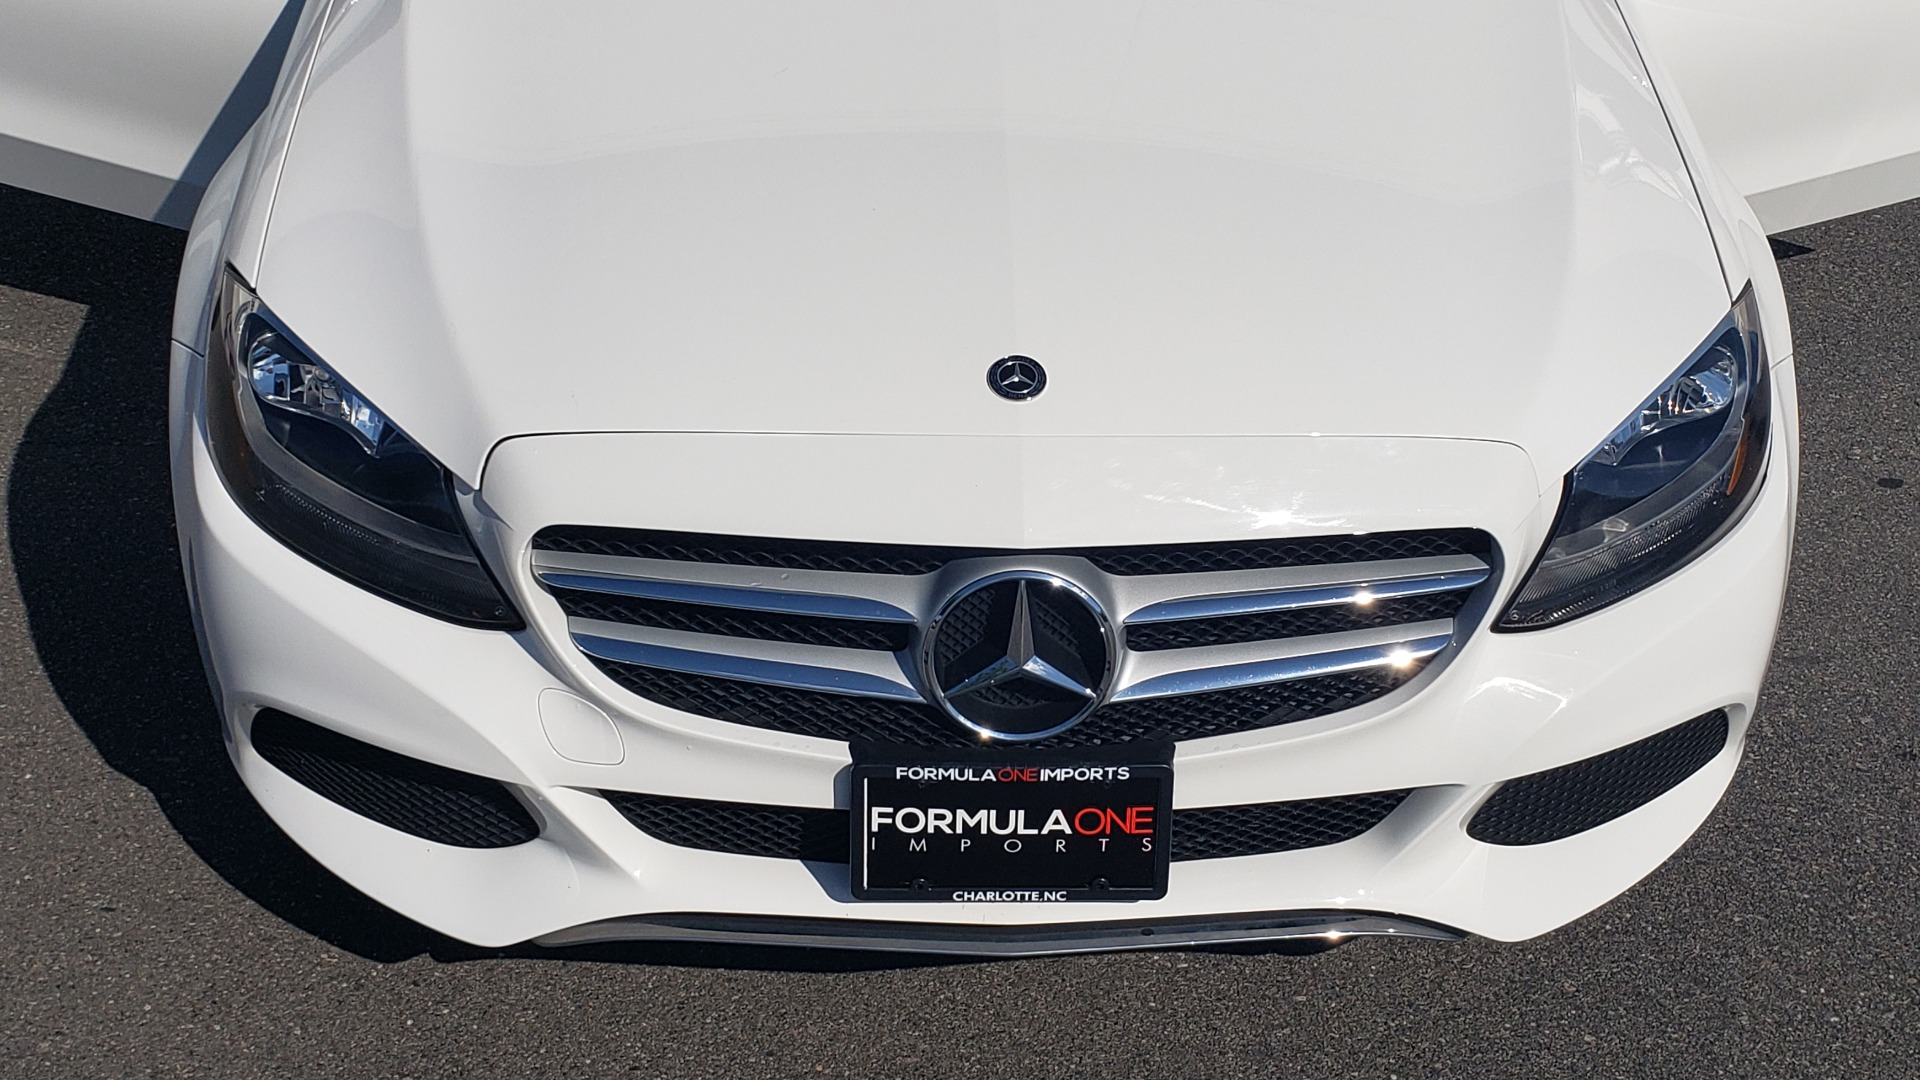 Used 2018 Mercedes-Benz C-Class C 300 4MATIC PREMIUM / APPLE CARPLAY / PANO-ROOF / REARVIEW for sale $33,795 at Formula Imports in Charlotte NC 28227 25